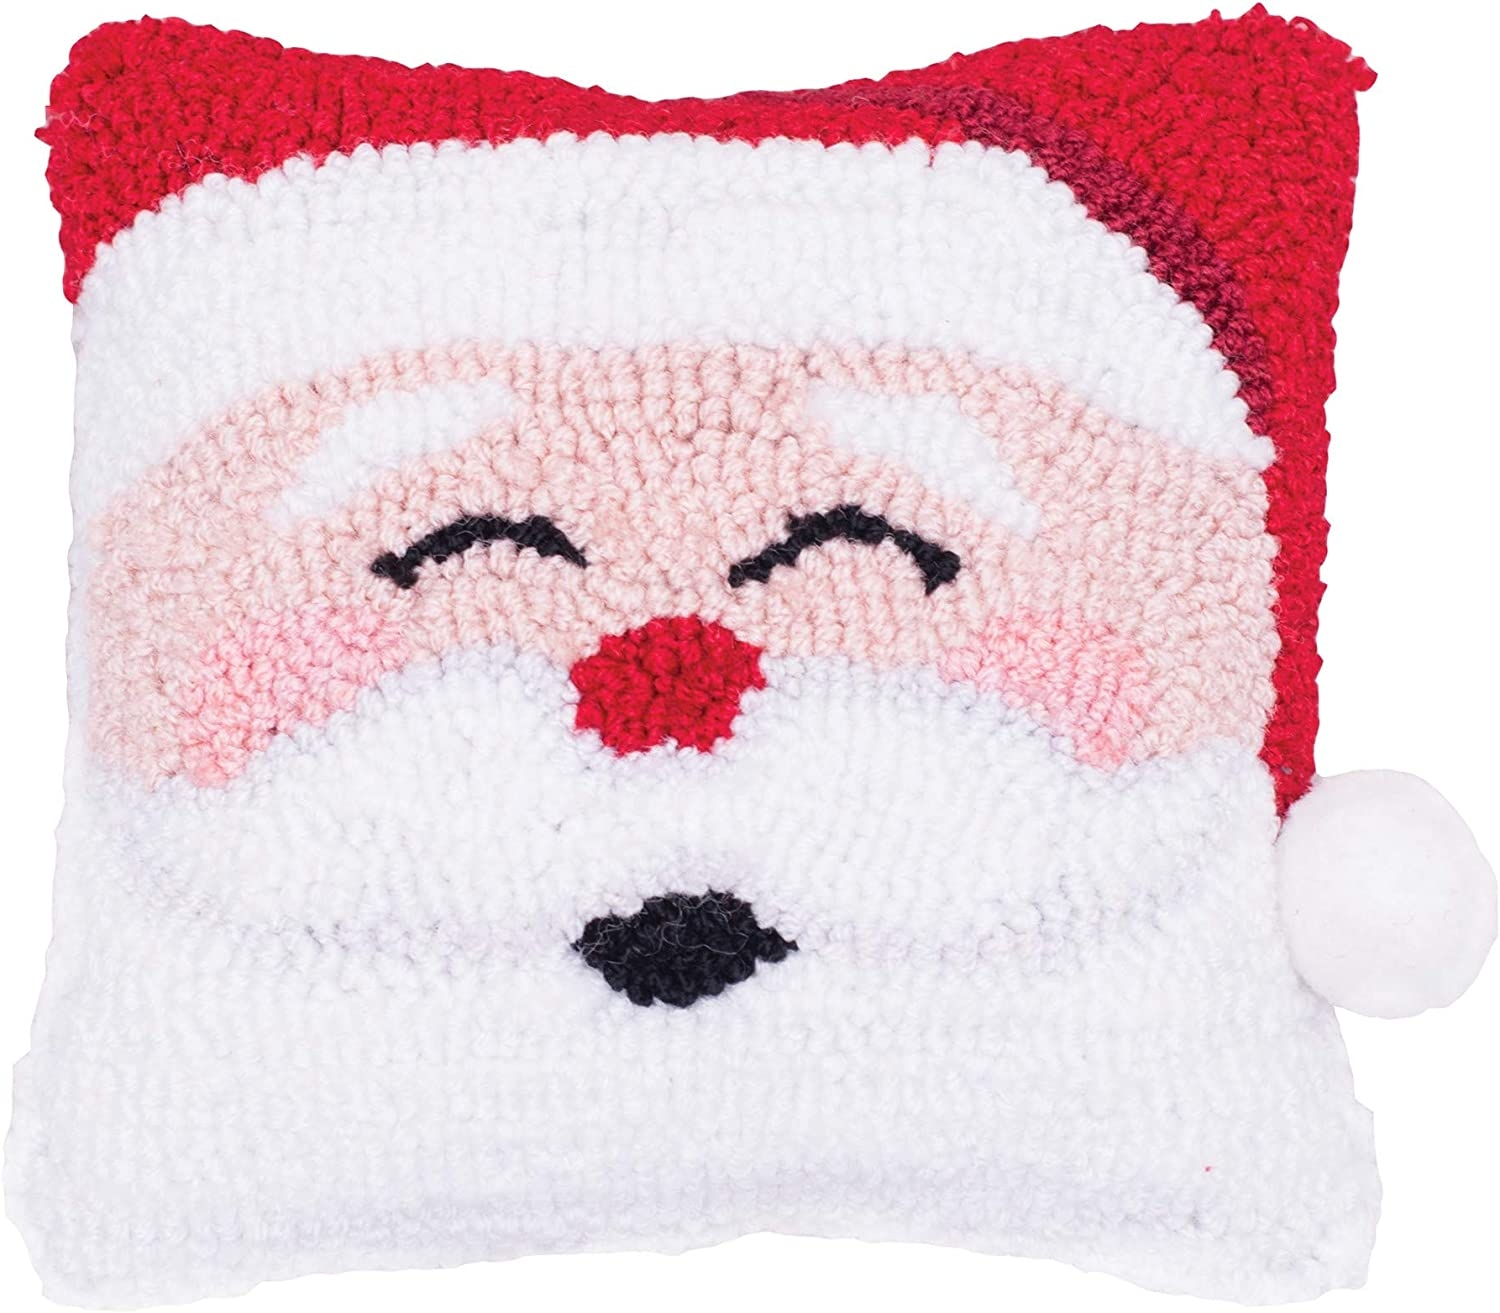 C&F Home Happy Santa Hooked Pillow Petite Xmas Christmas Winter Decorative Throw Pillow for Couch Chair Living Room Bedroom 8 x 8 White